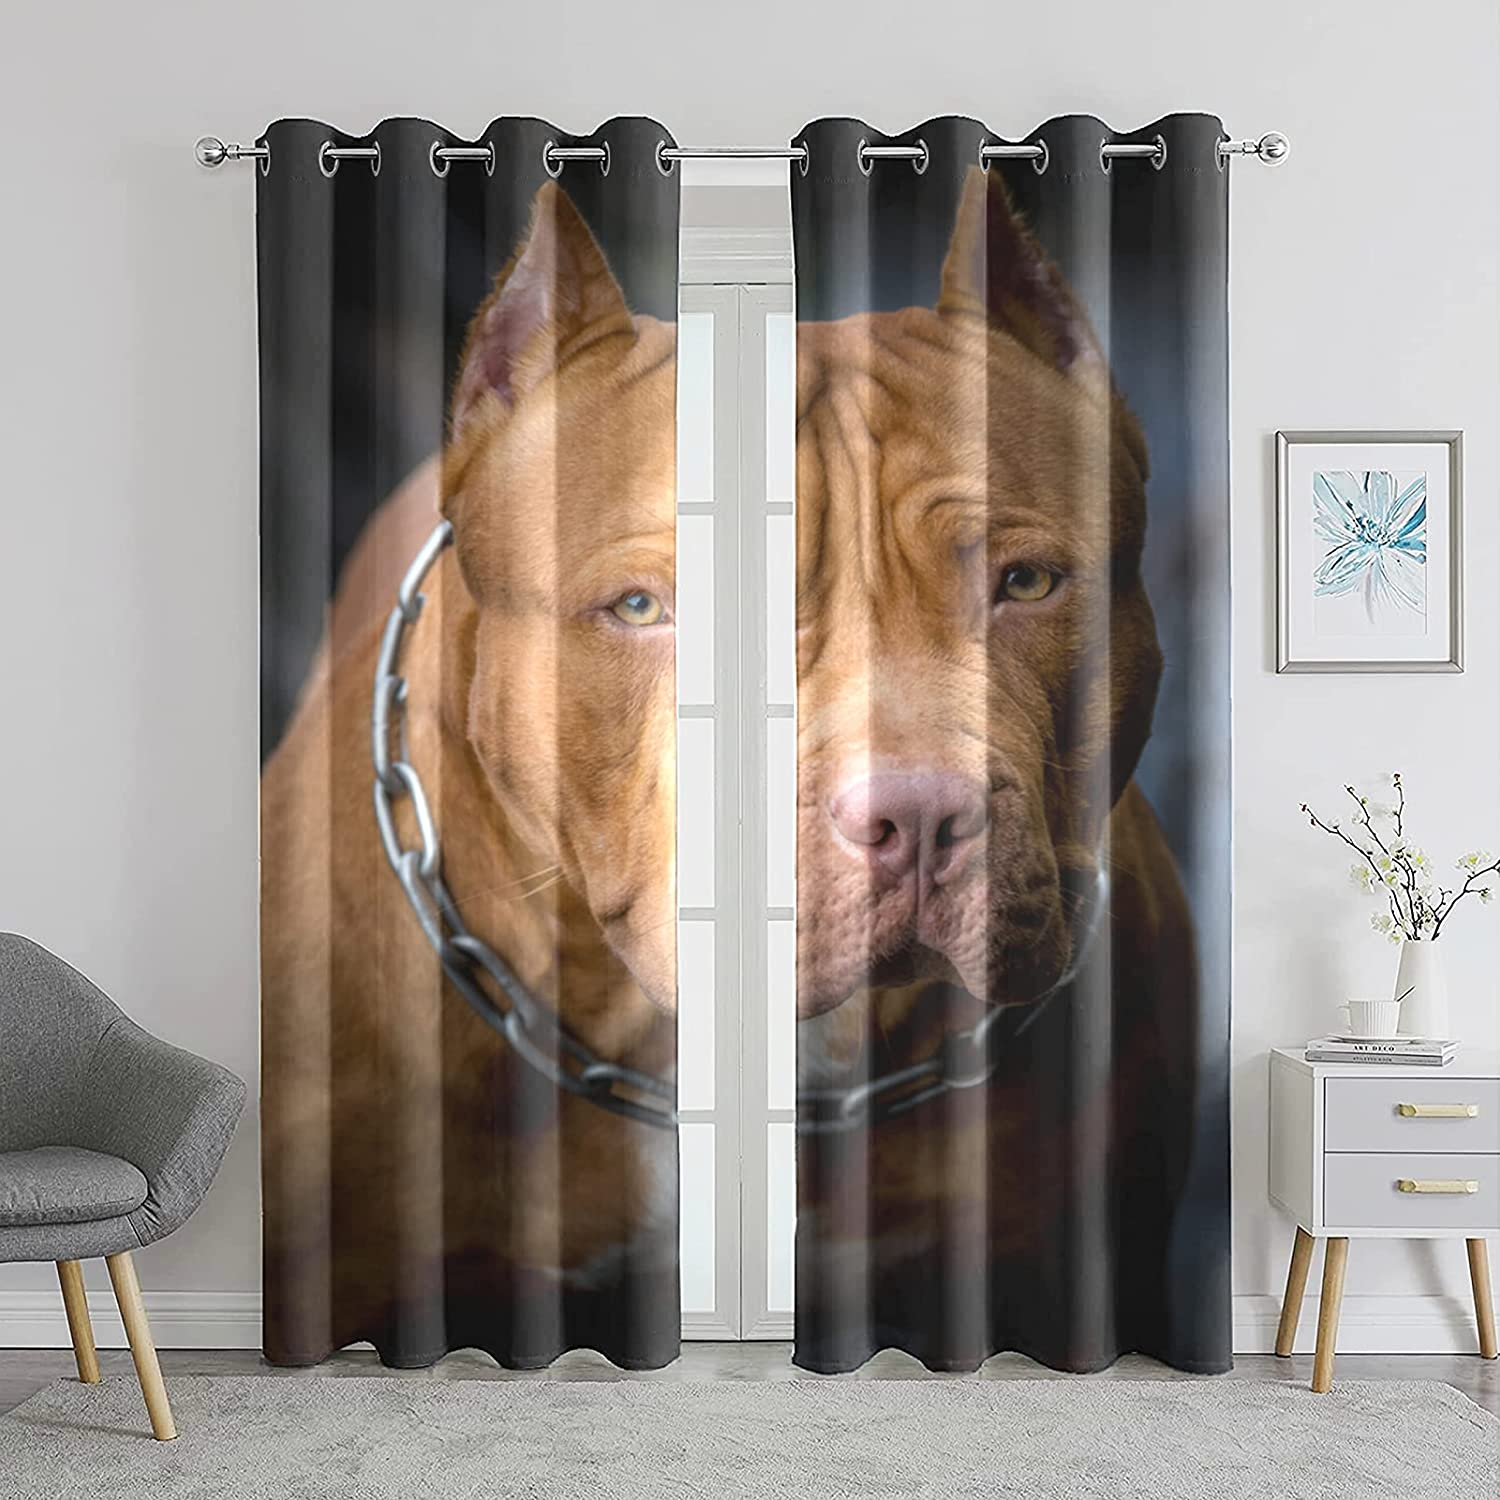 Living Room Curtains Recommendation 2 Panel Sets Blac 4 years warranty American Pit Terrier Bull